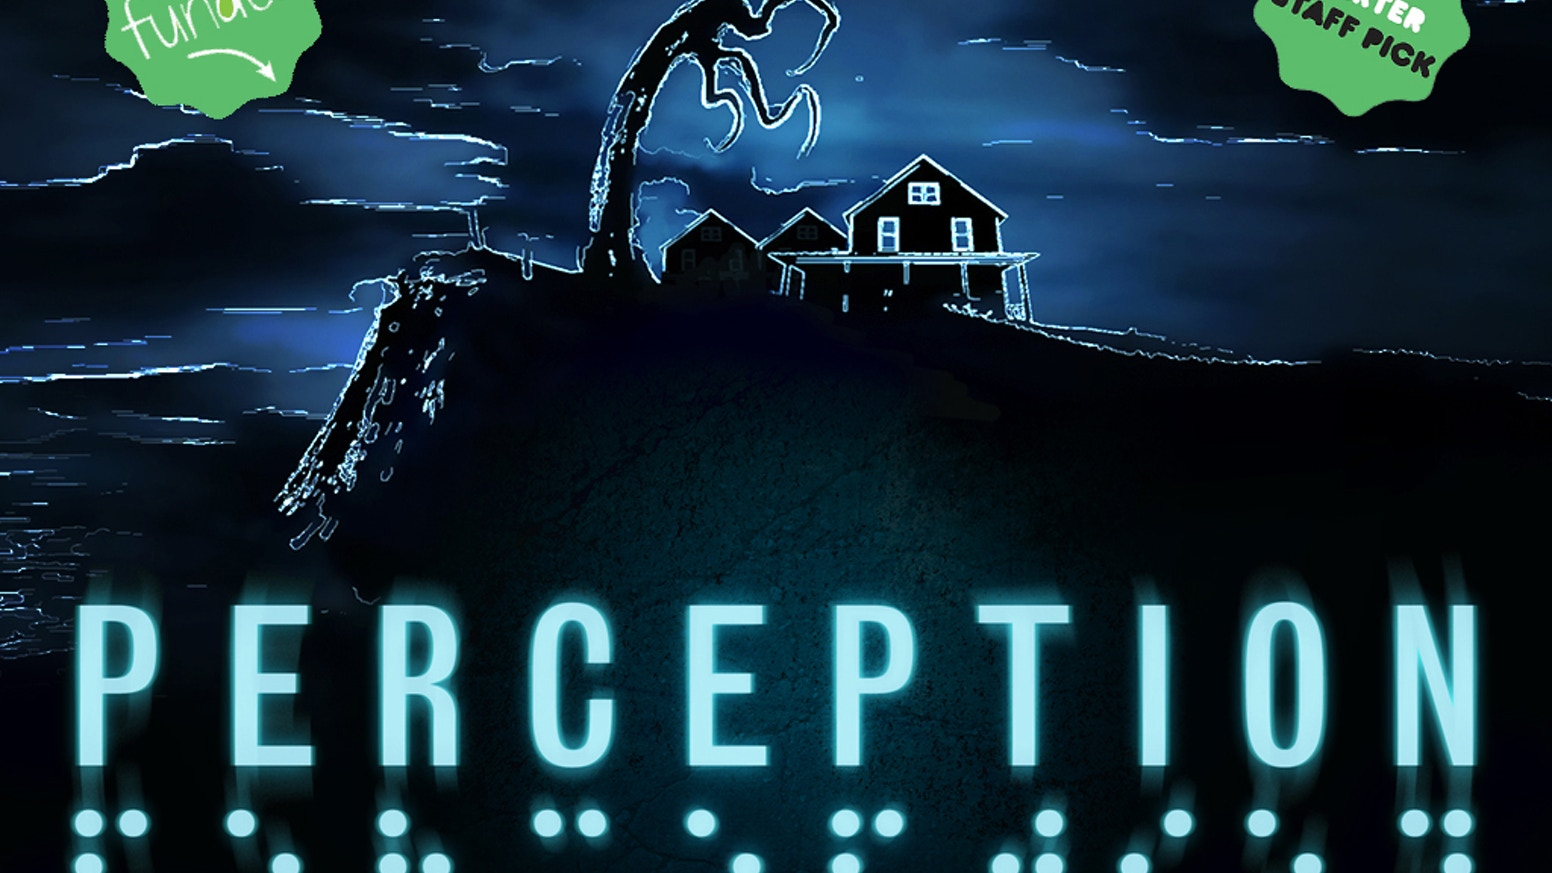 A new narrative horror adventure where you play a young blind woman.  From developers of BioShock and Dead Space.